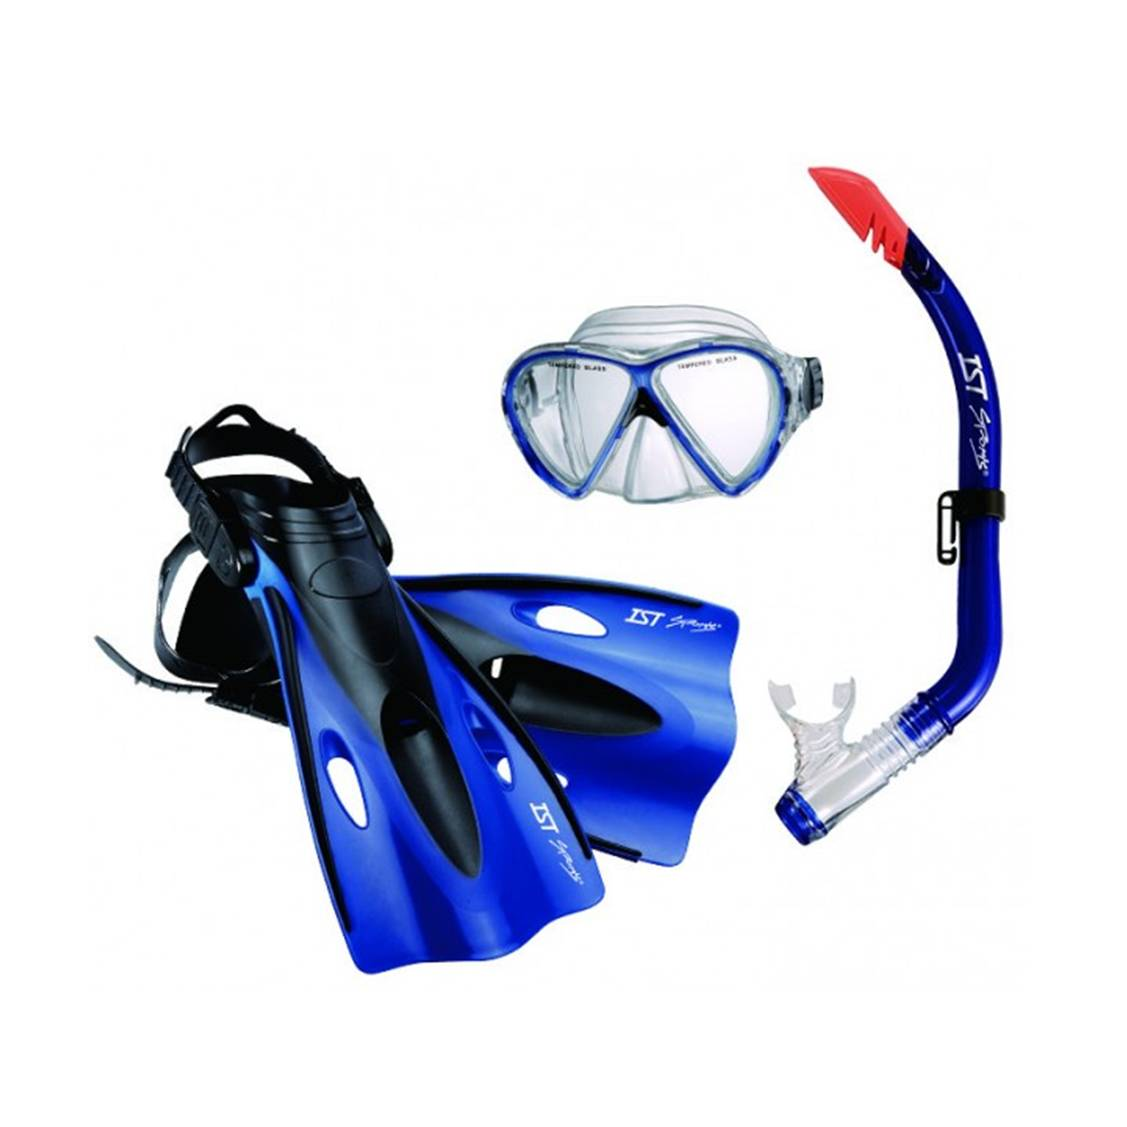 Travel Snorkel Set Review